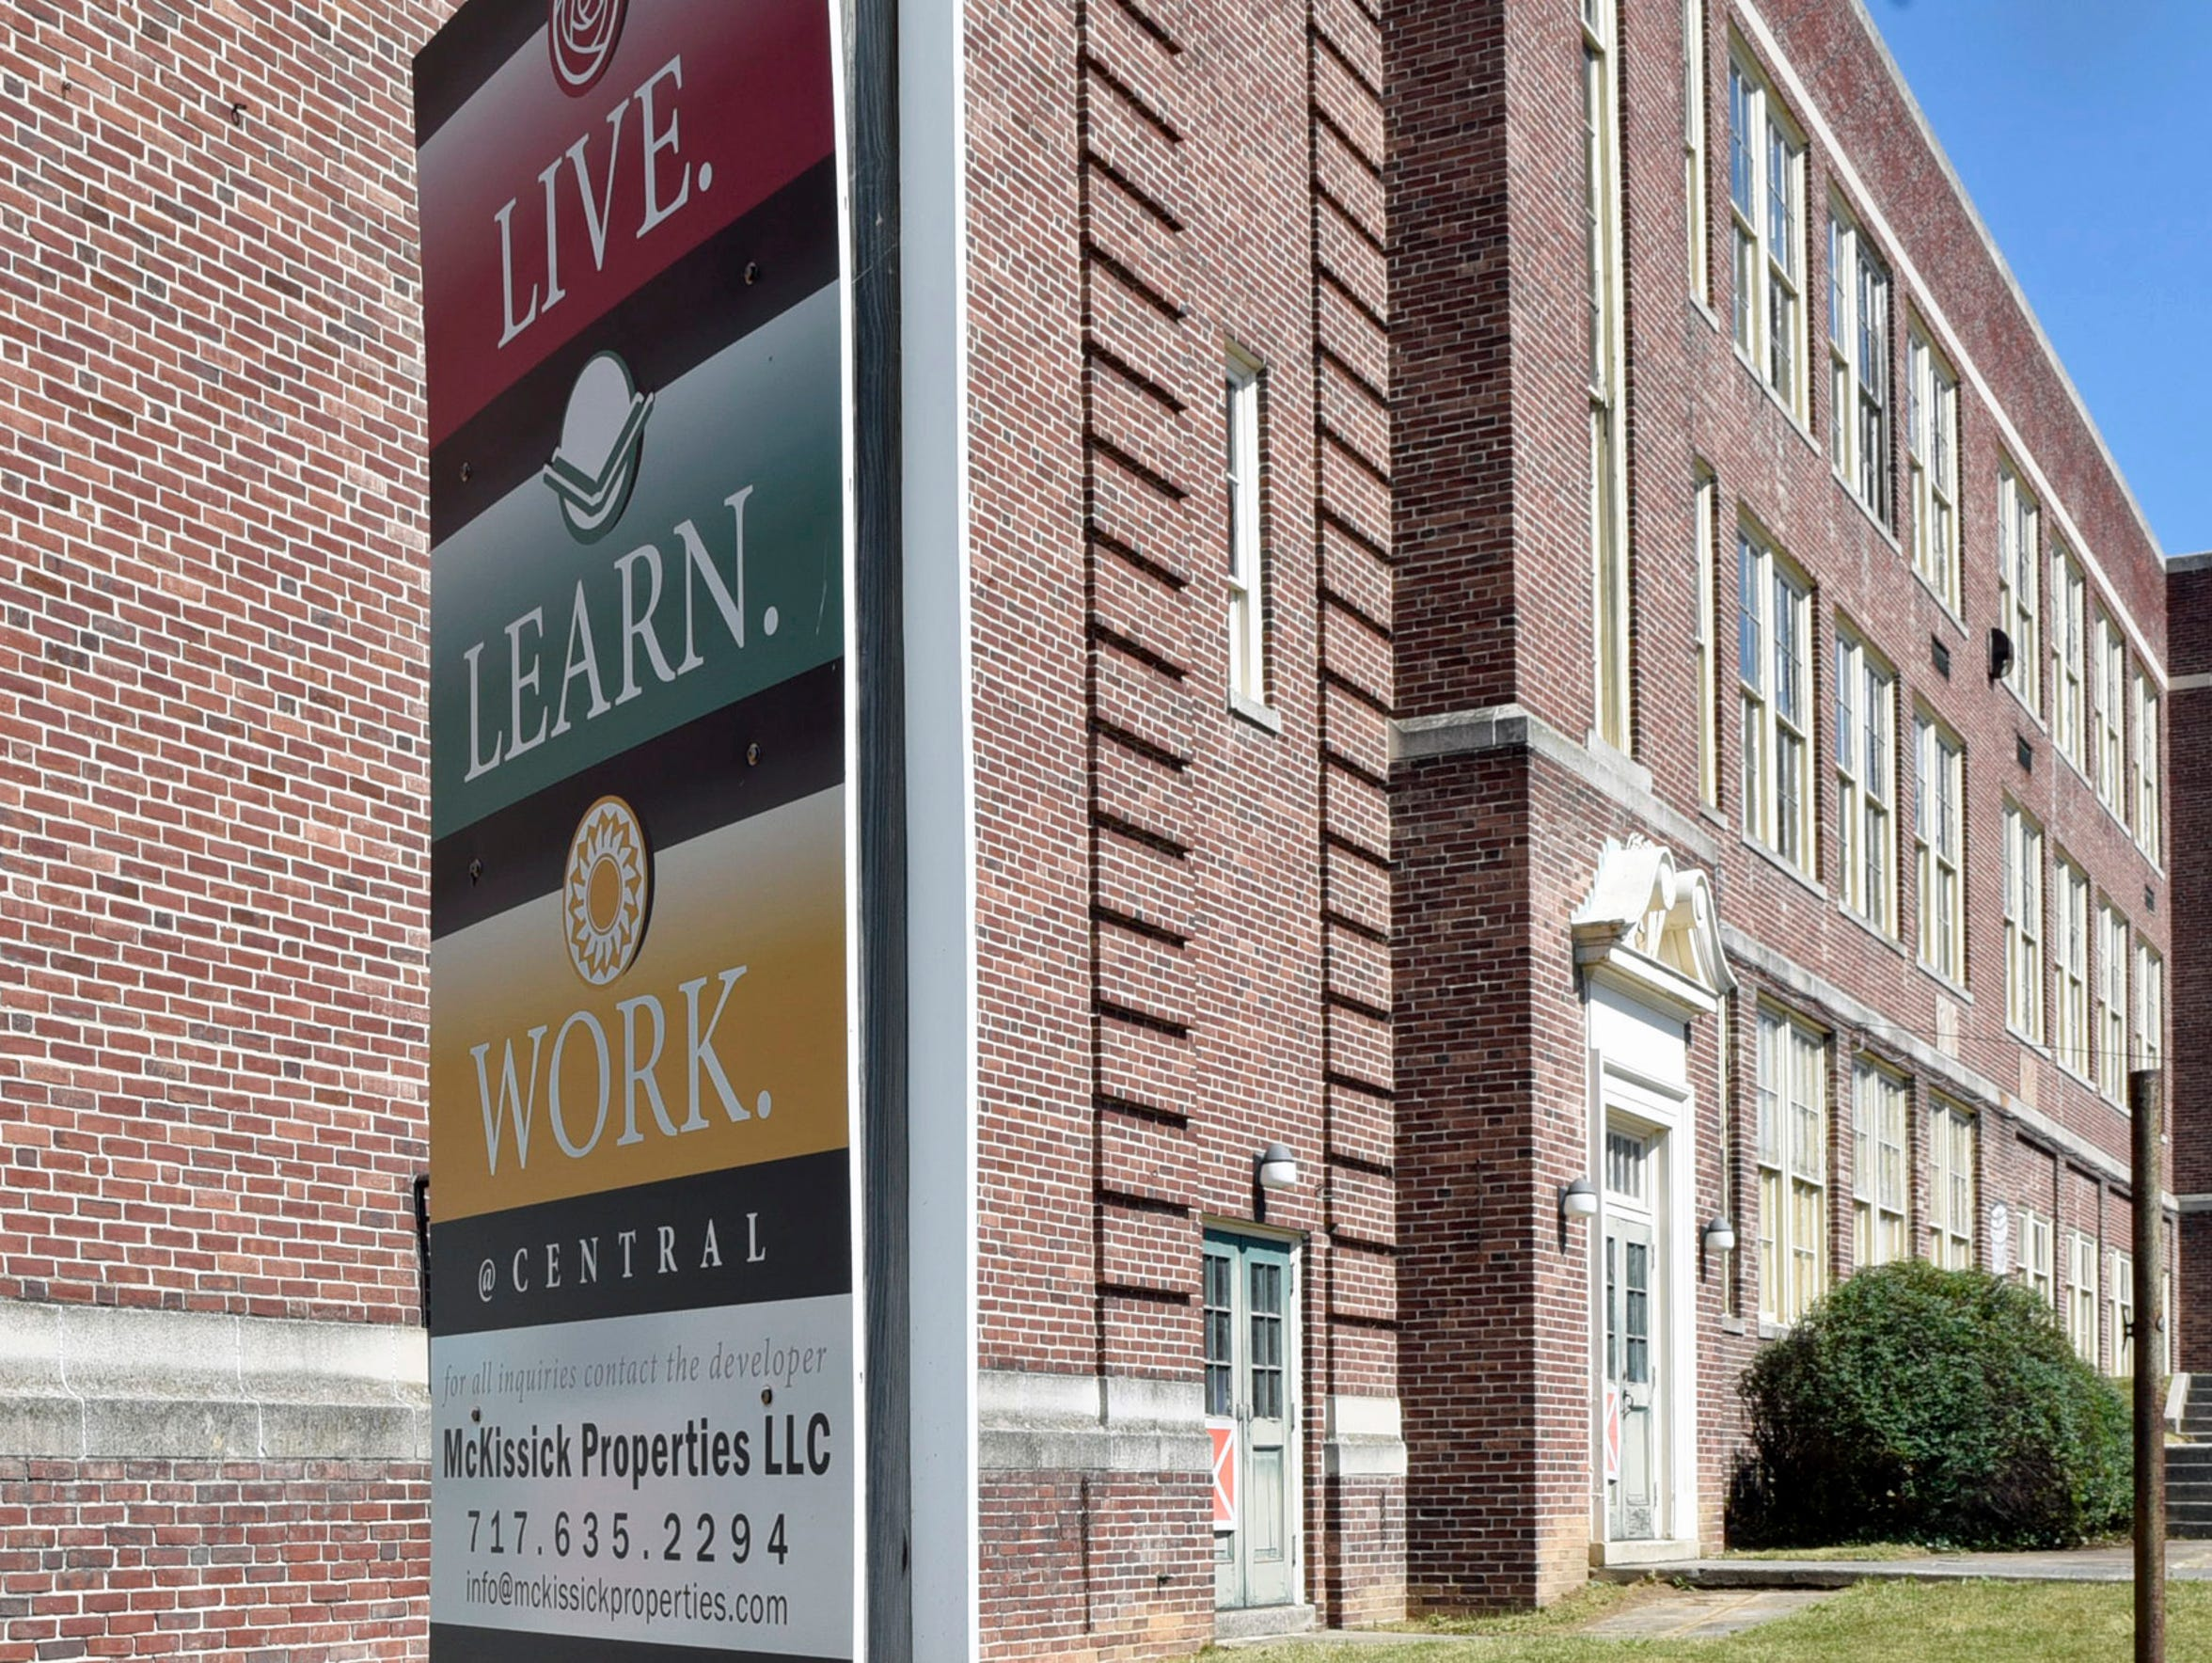 The former Chambersburg High School at the corner of